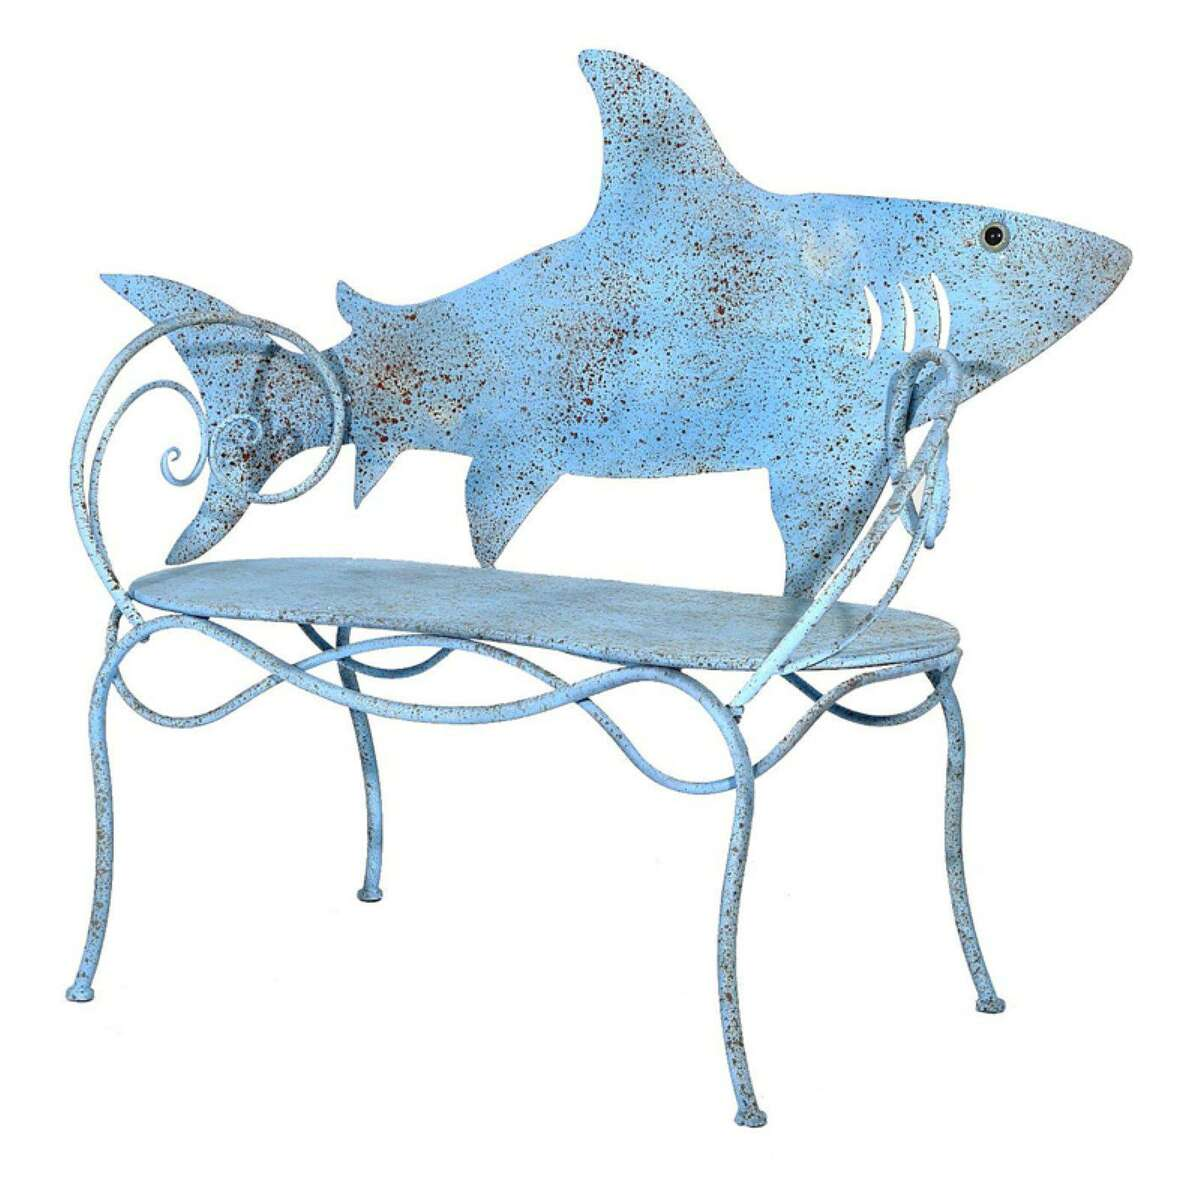 The Dock Shop, with locations in Darien and Westport, carries nautical- and beach-themed home decor items, such as this fun metal 'shark' bench.